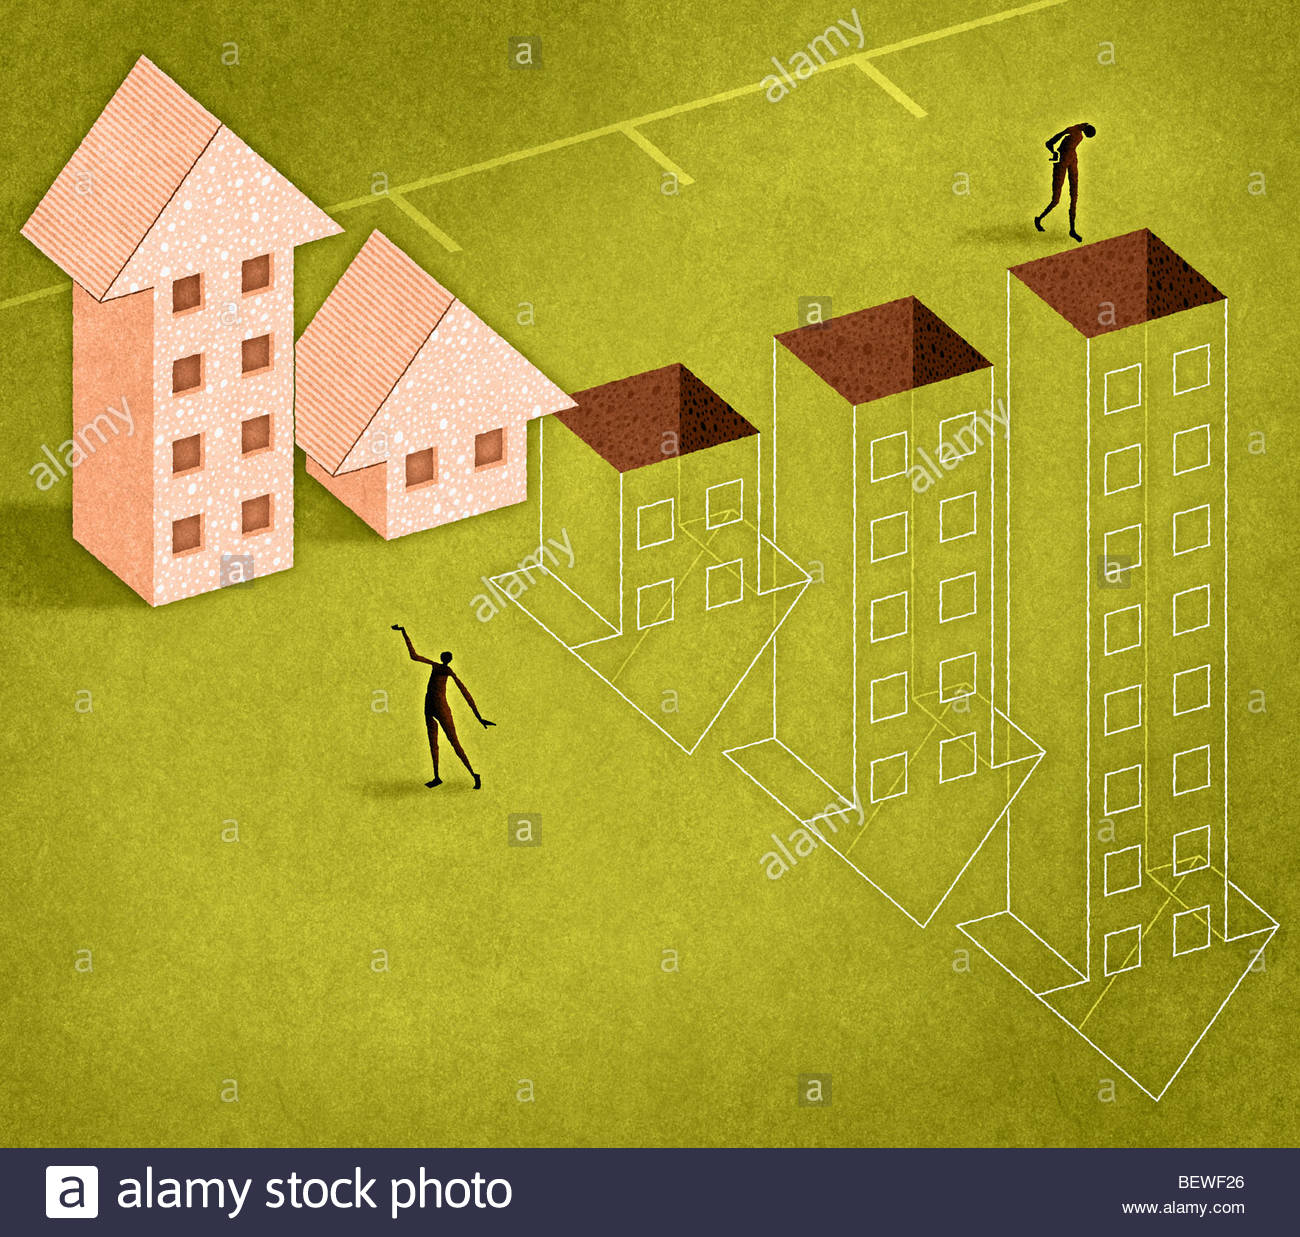 Graph of arrow houses ascending and descending - Stock Image